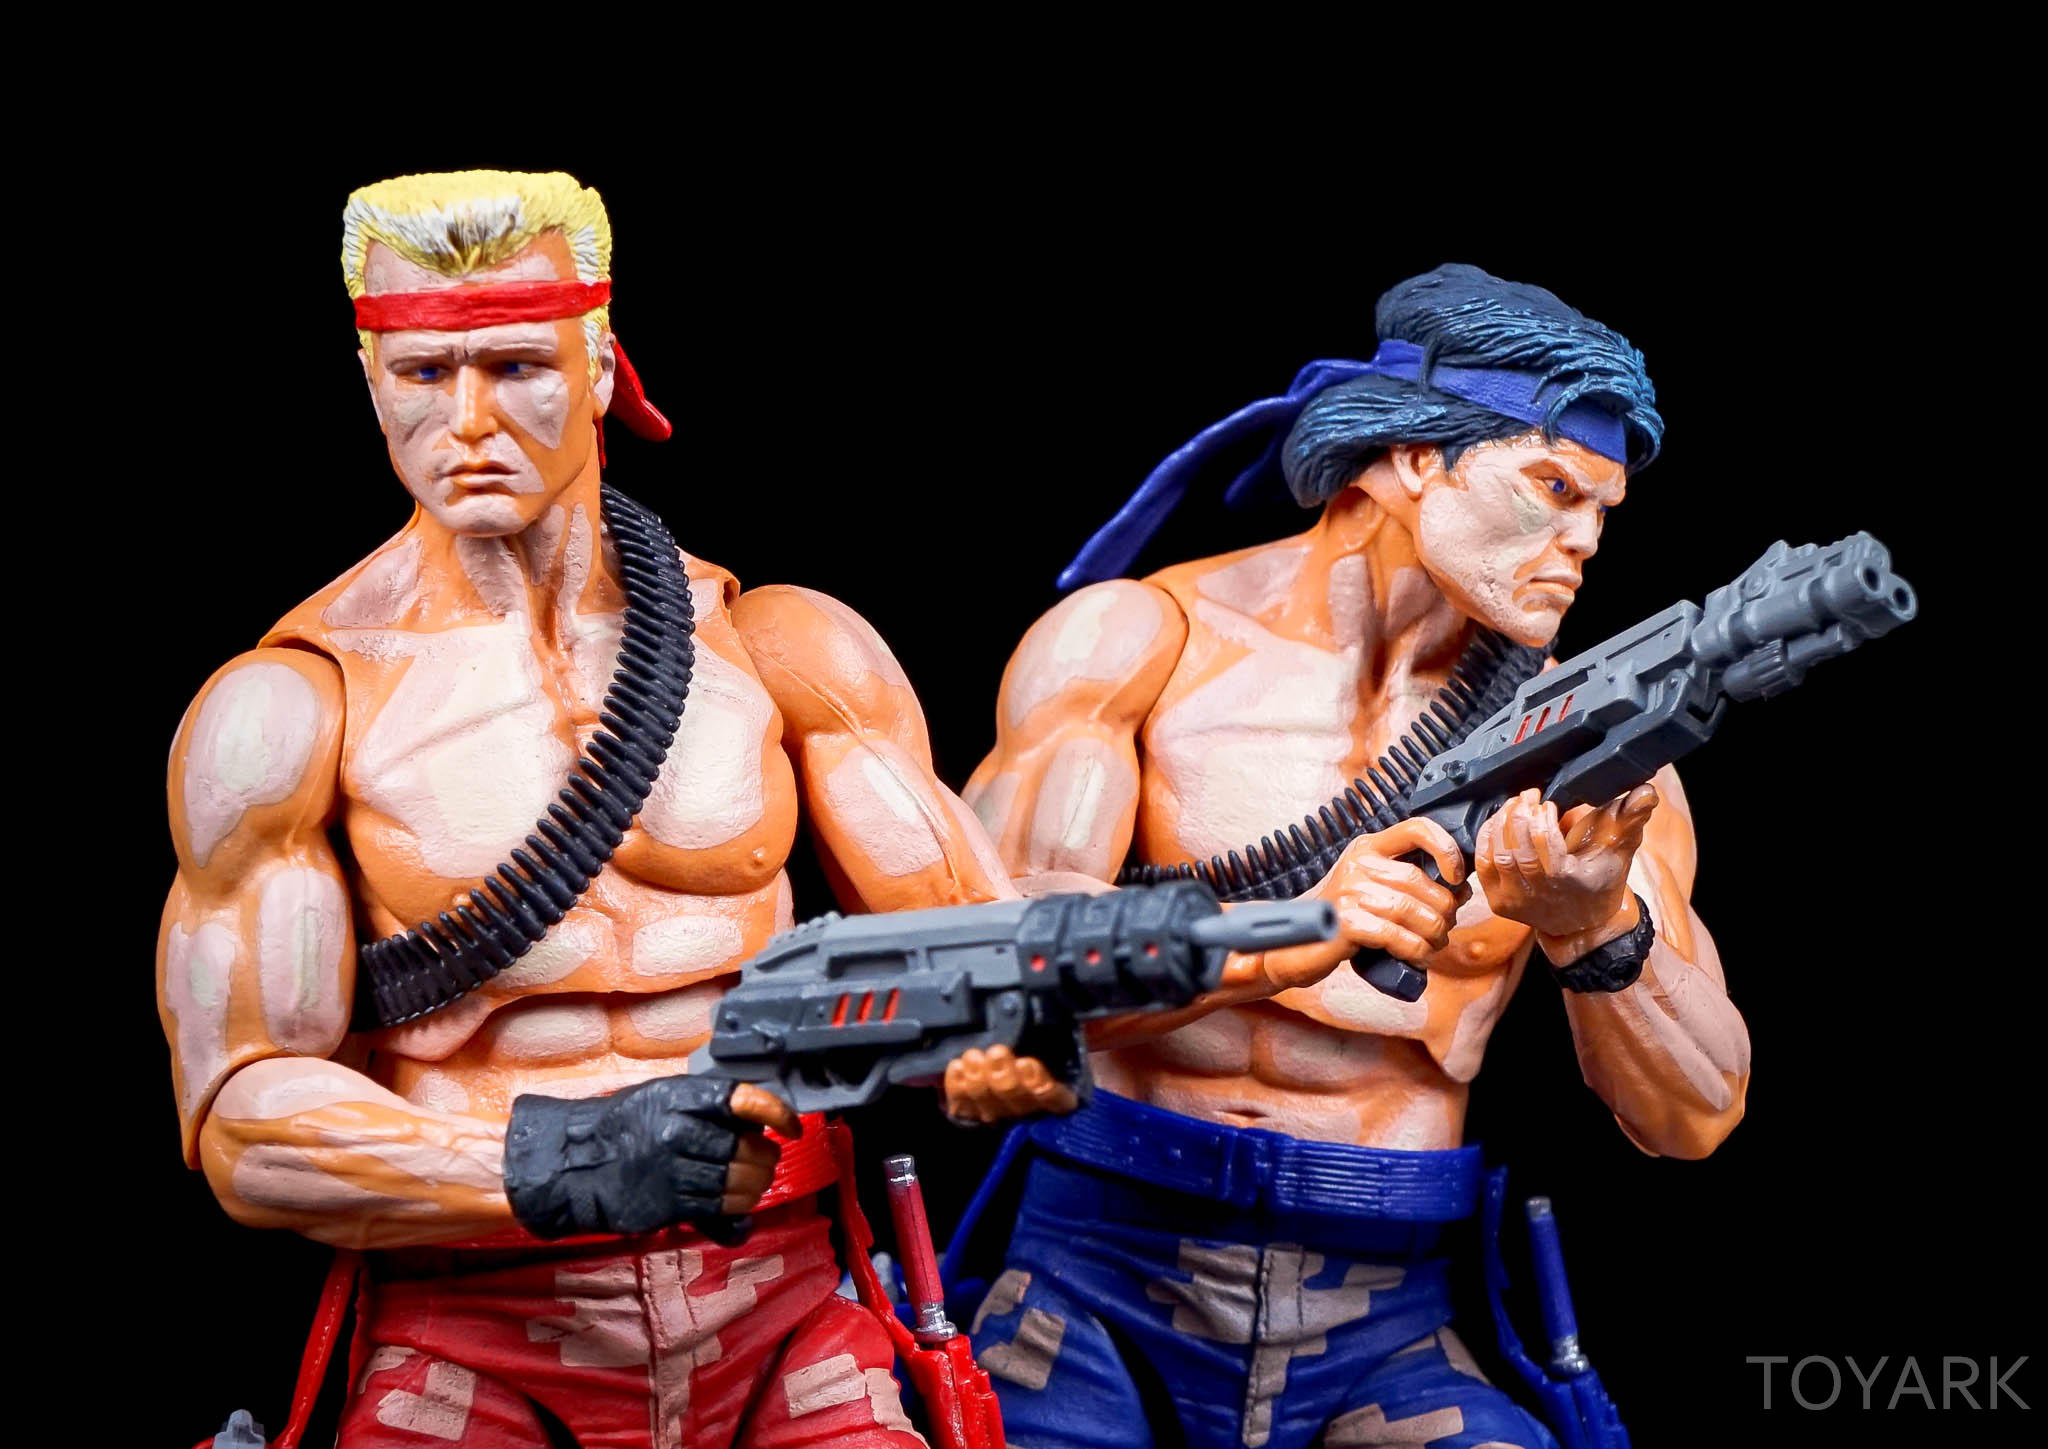 http://news.toyark.com/wp-content/uploads/sites/4/2016/08/NECA-Contra-VGA-030.jpg